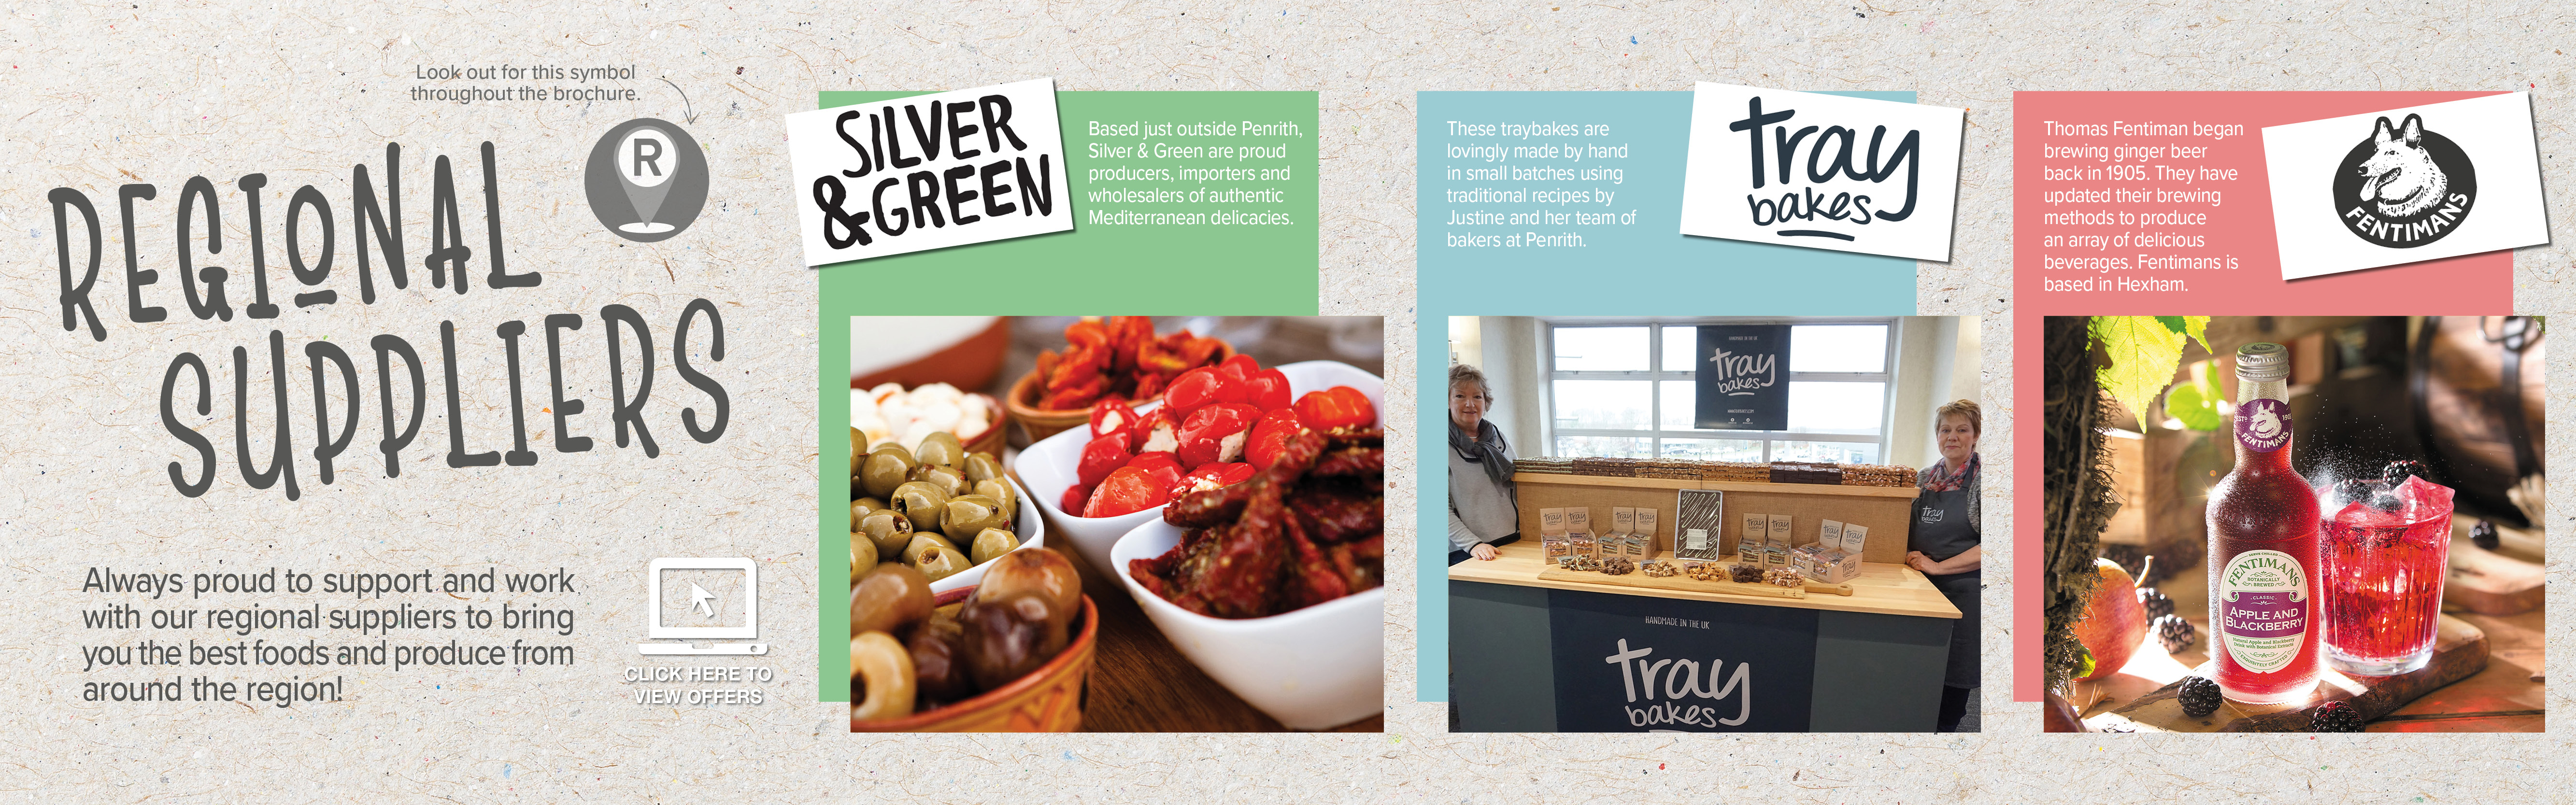 Pioneer Foodservice | Regional suppliers | Fentimans | Traybakes, Penrith | Silver & Green Olives